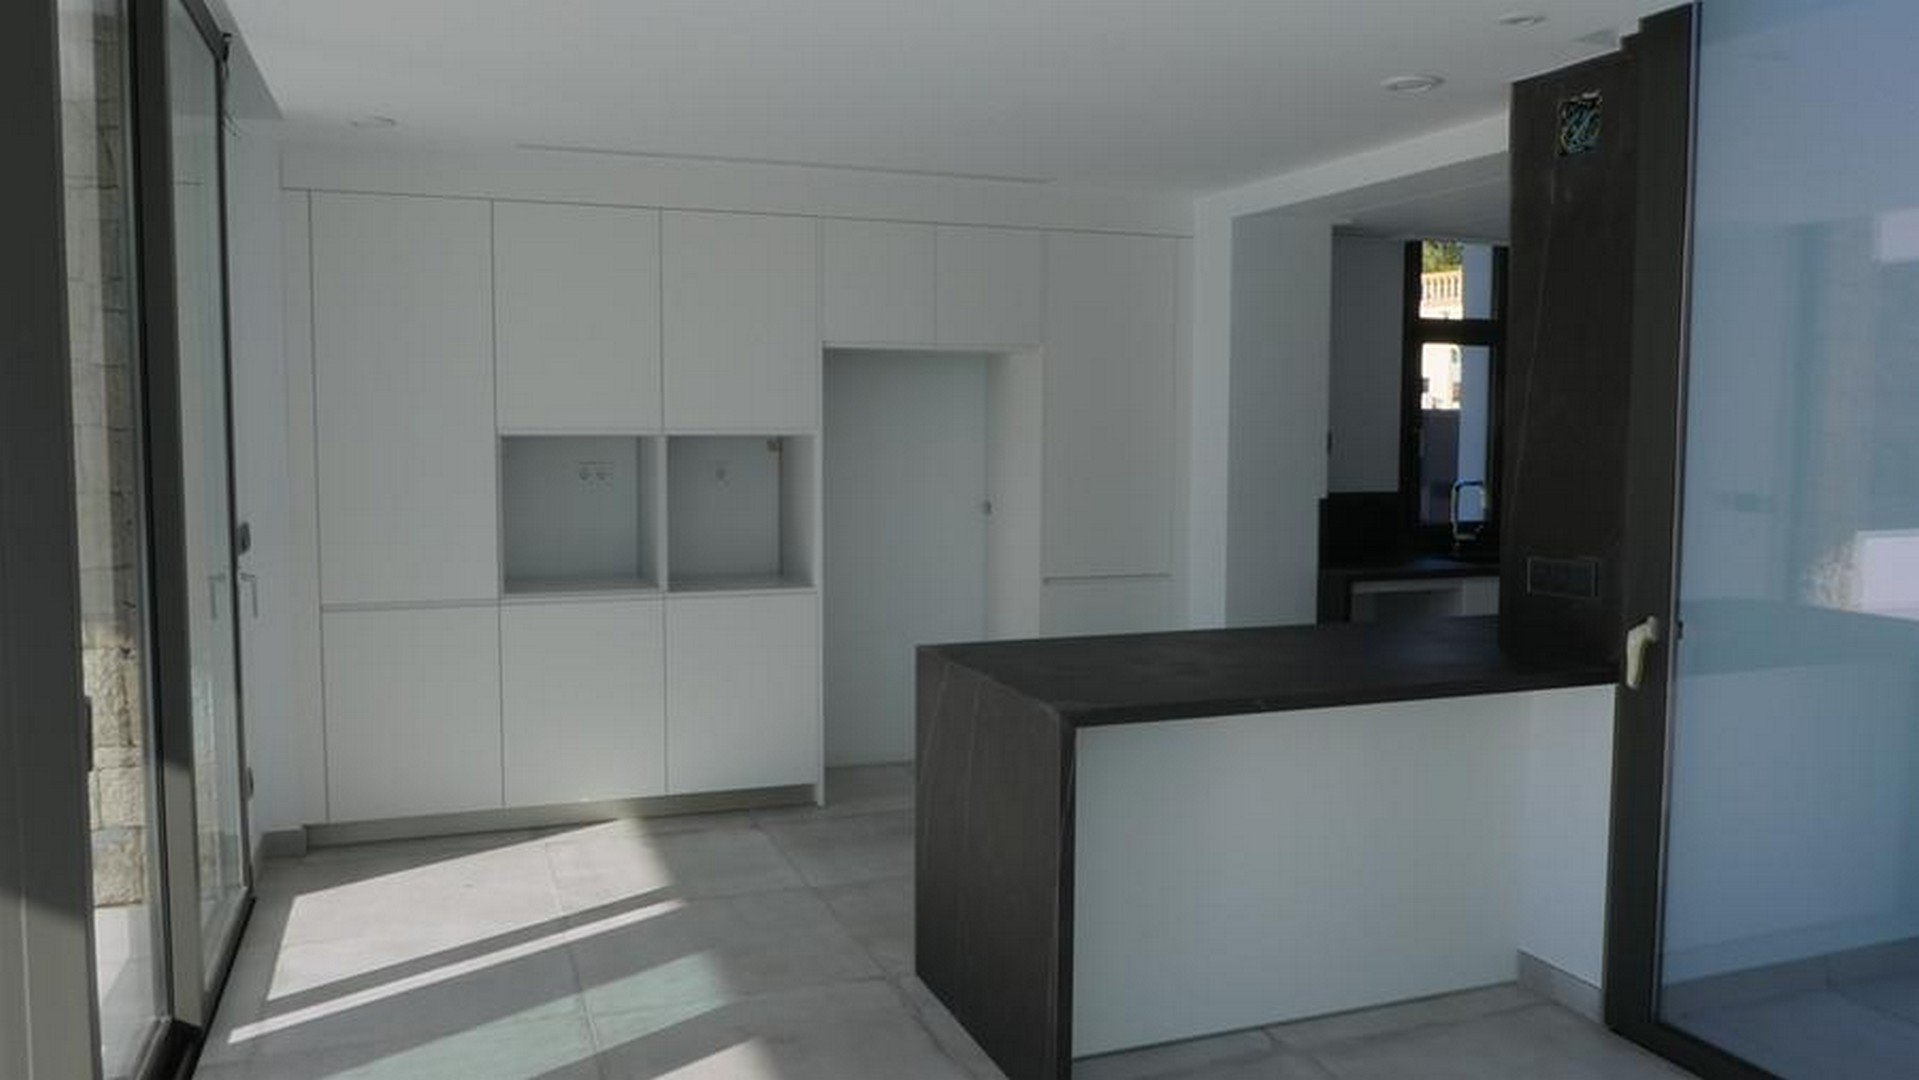 Photogallery - 4 - Build a villa in Moraira: villas for sale in Moraira